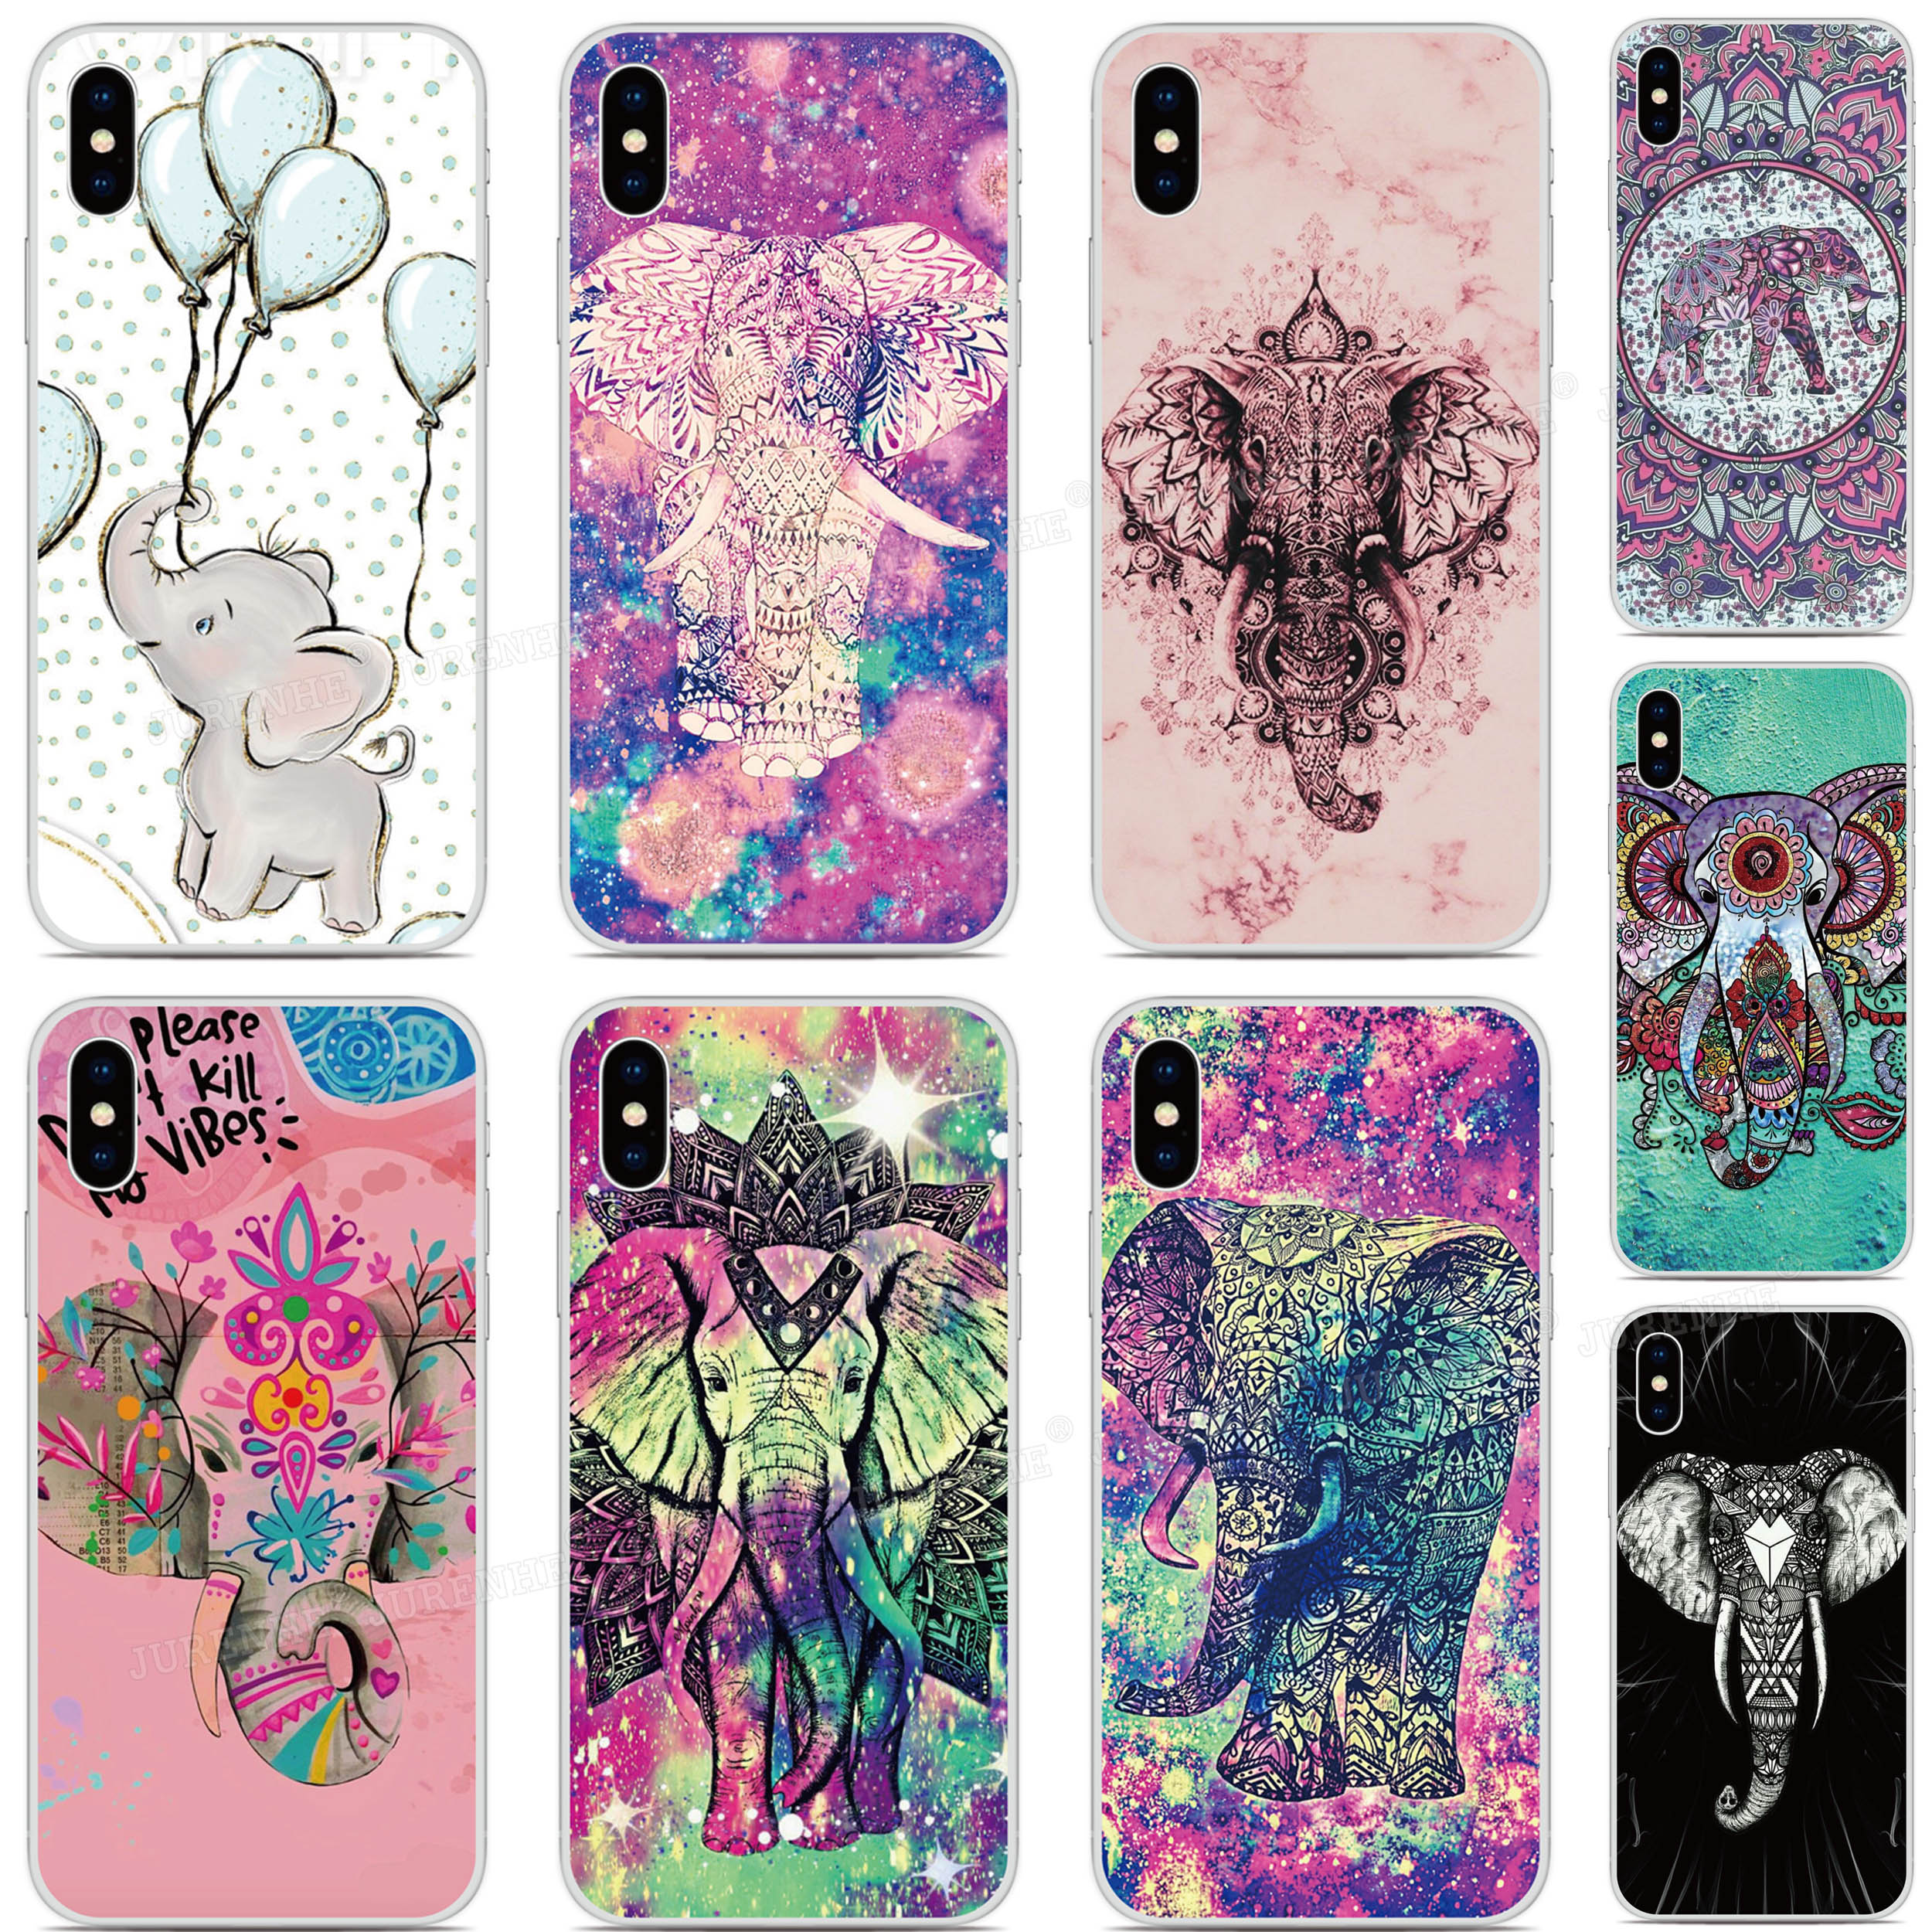 Silicone Cute Elephant Cover <font><b>Cases</b></font> For <font><b>Doogee</b></font> X95 X90 Y8C Mix 2 N20 Y9 Plus N10 Y7 Y8 X70 X60 X50 X30 X55 X60L <font><b>X50L</b></font> Phone <font><b>Case</b></font> image